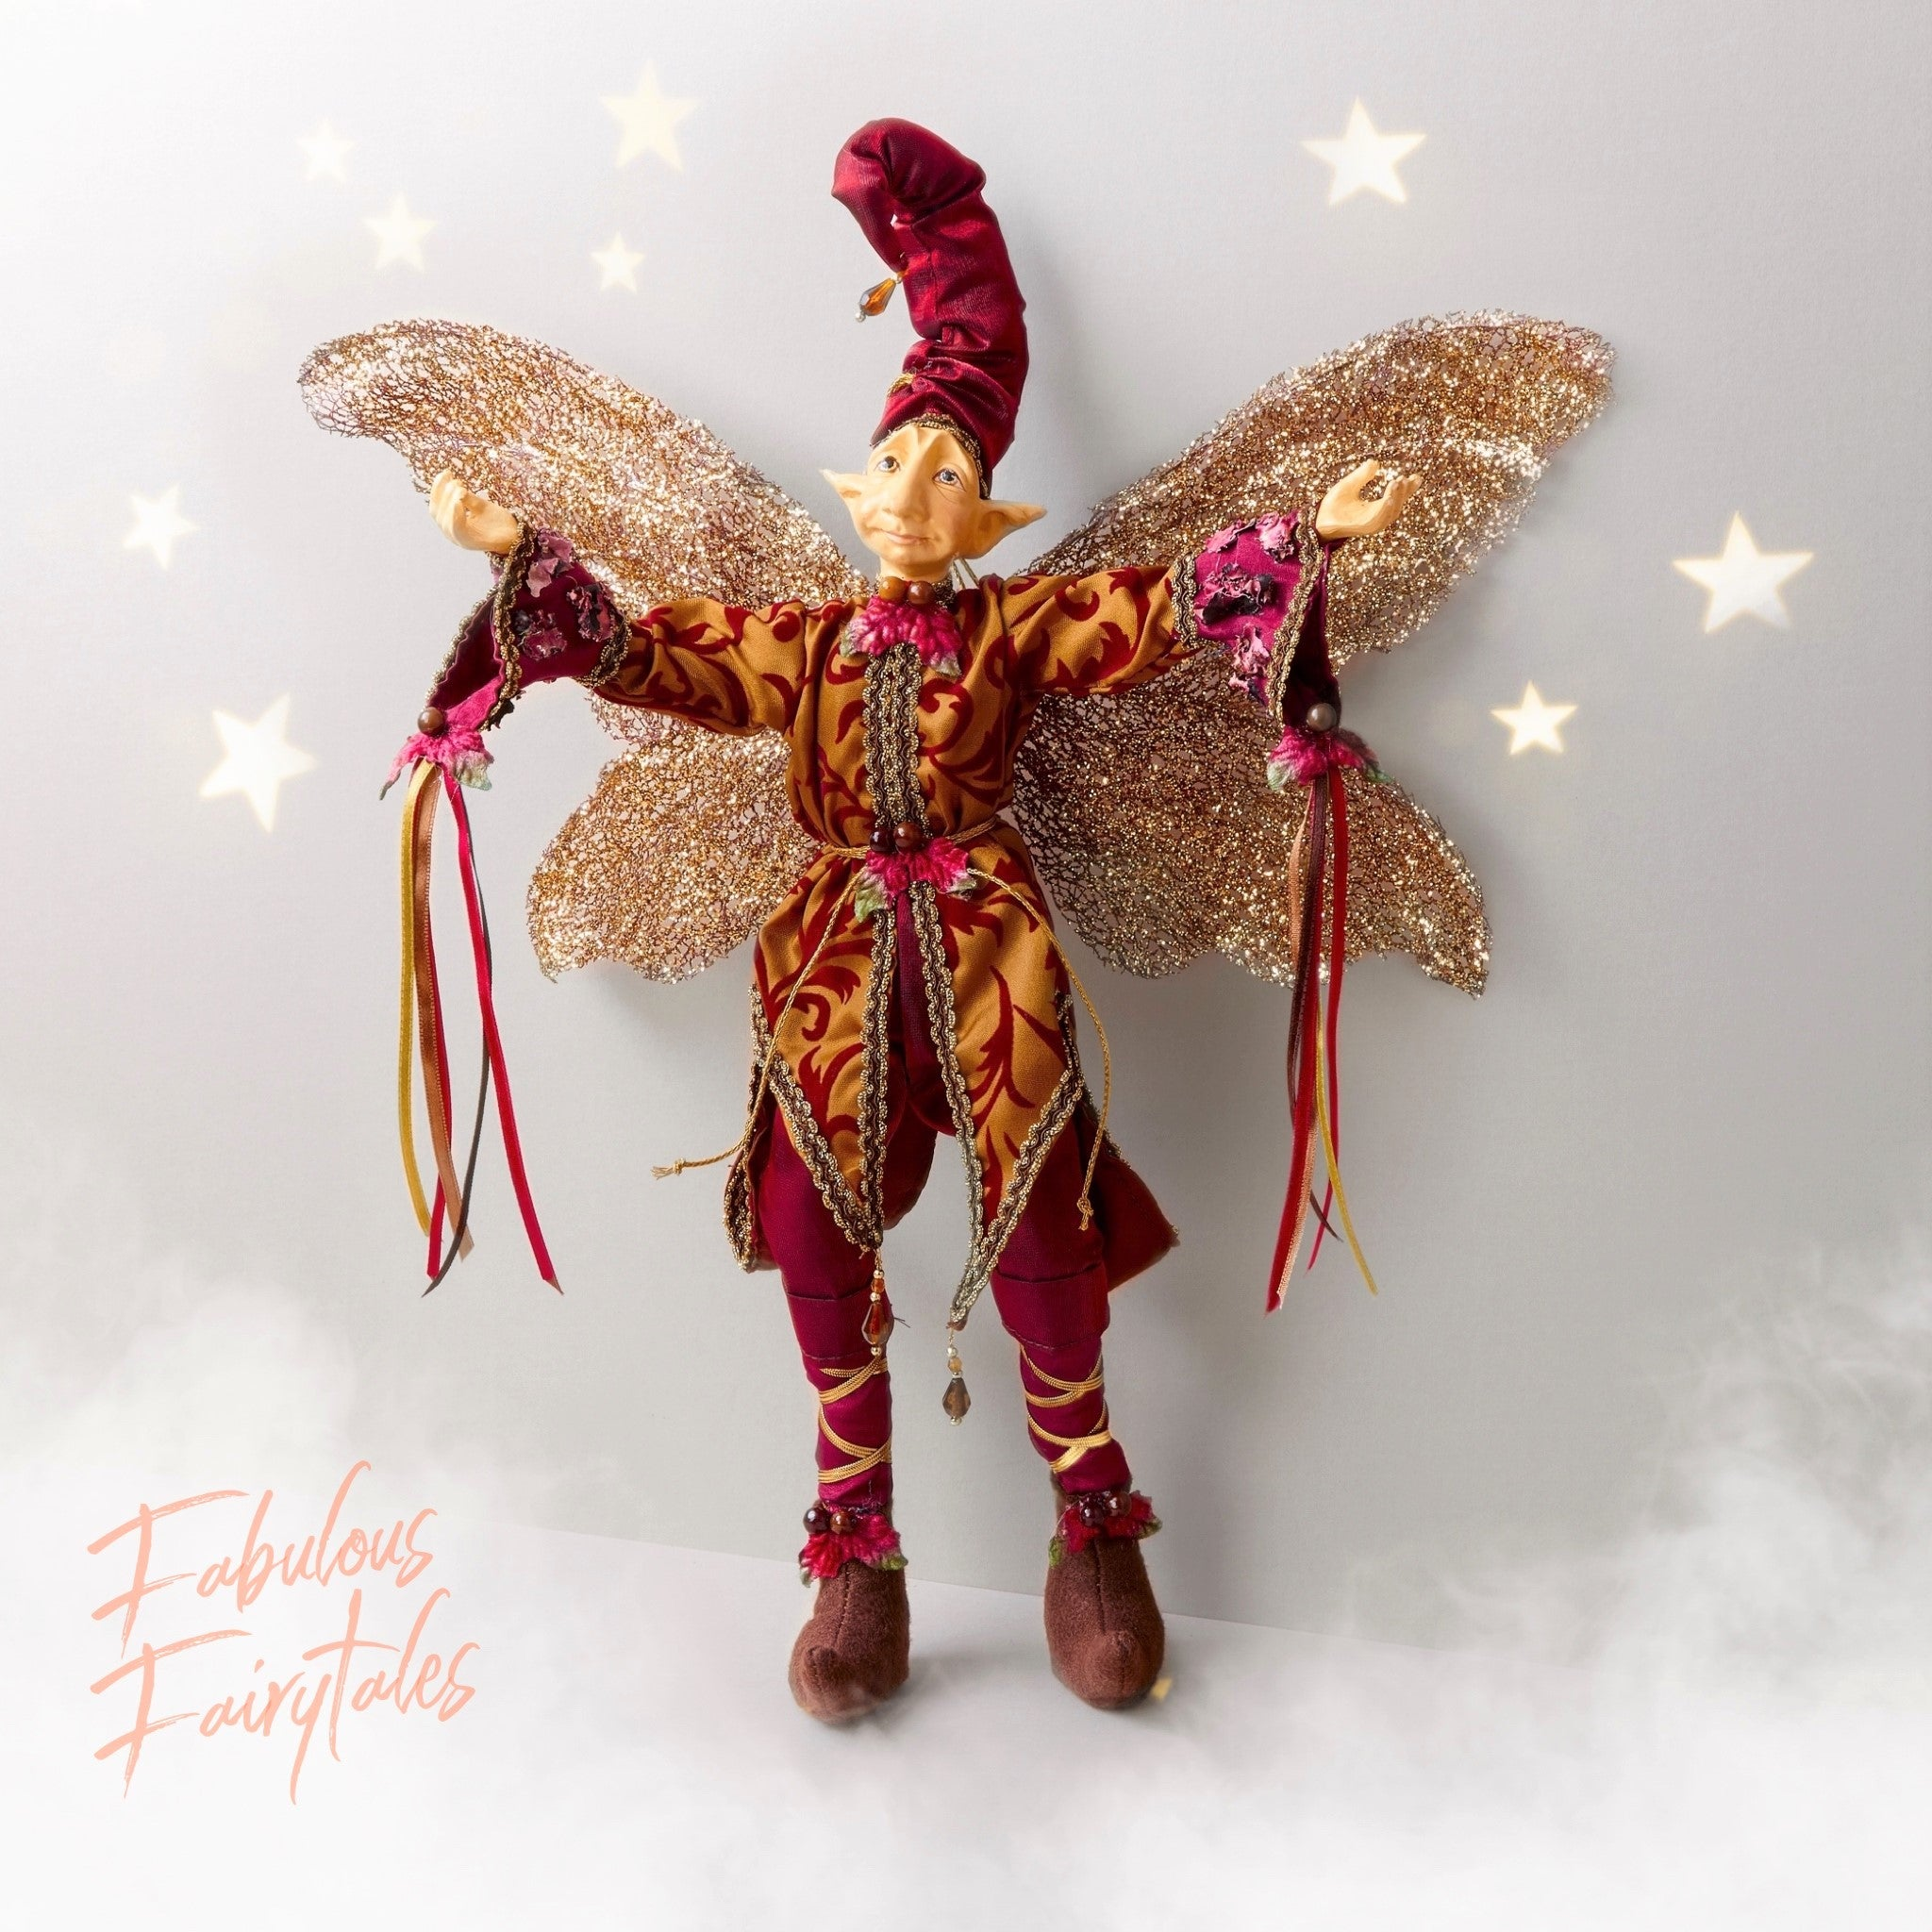 Fabulous Fairytales - Bruno the Forest Wizard Decoration